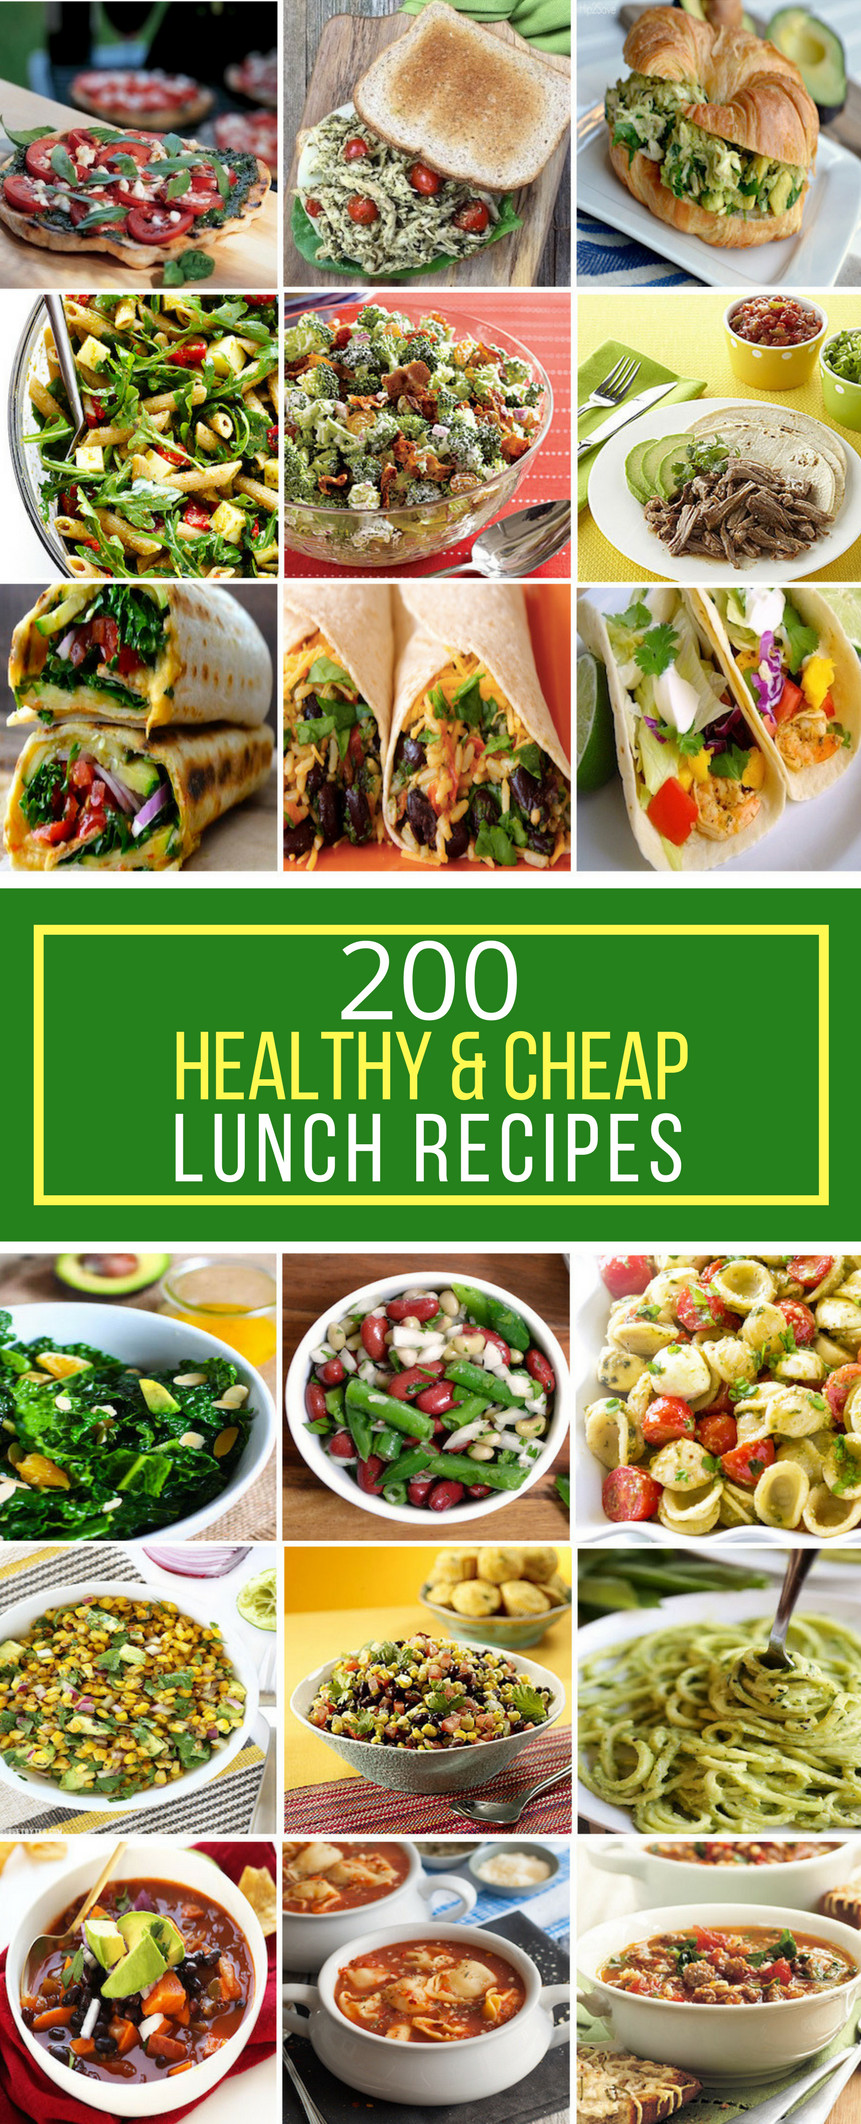 Cheap Healthy Lunches  200 Healthy & Cheap Lunch Recipes Prudent Penny Pincher